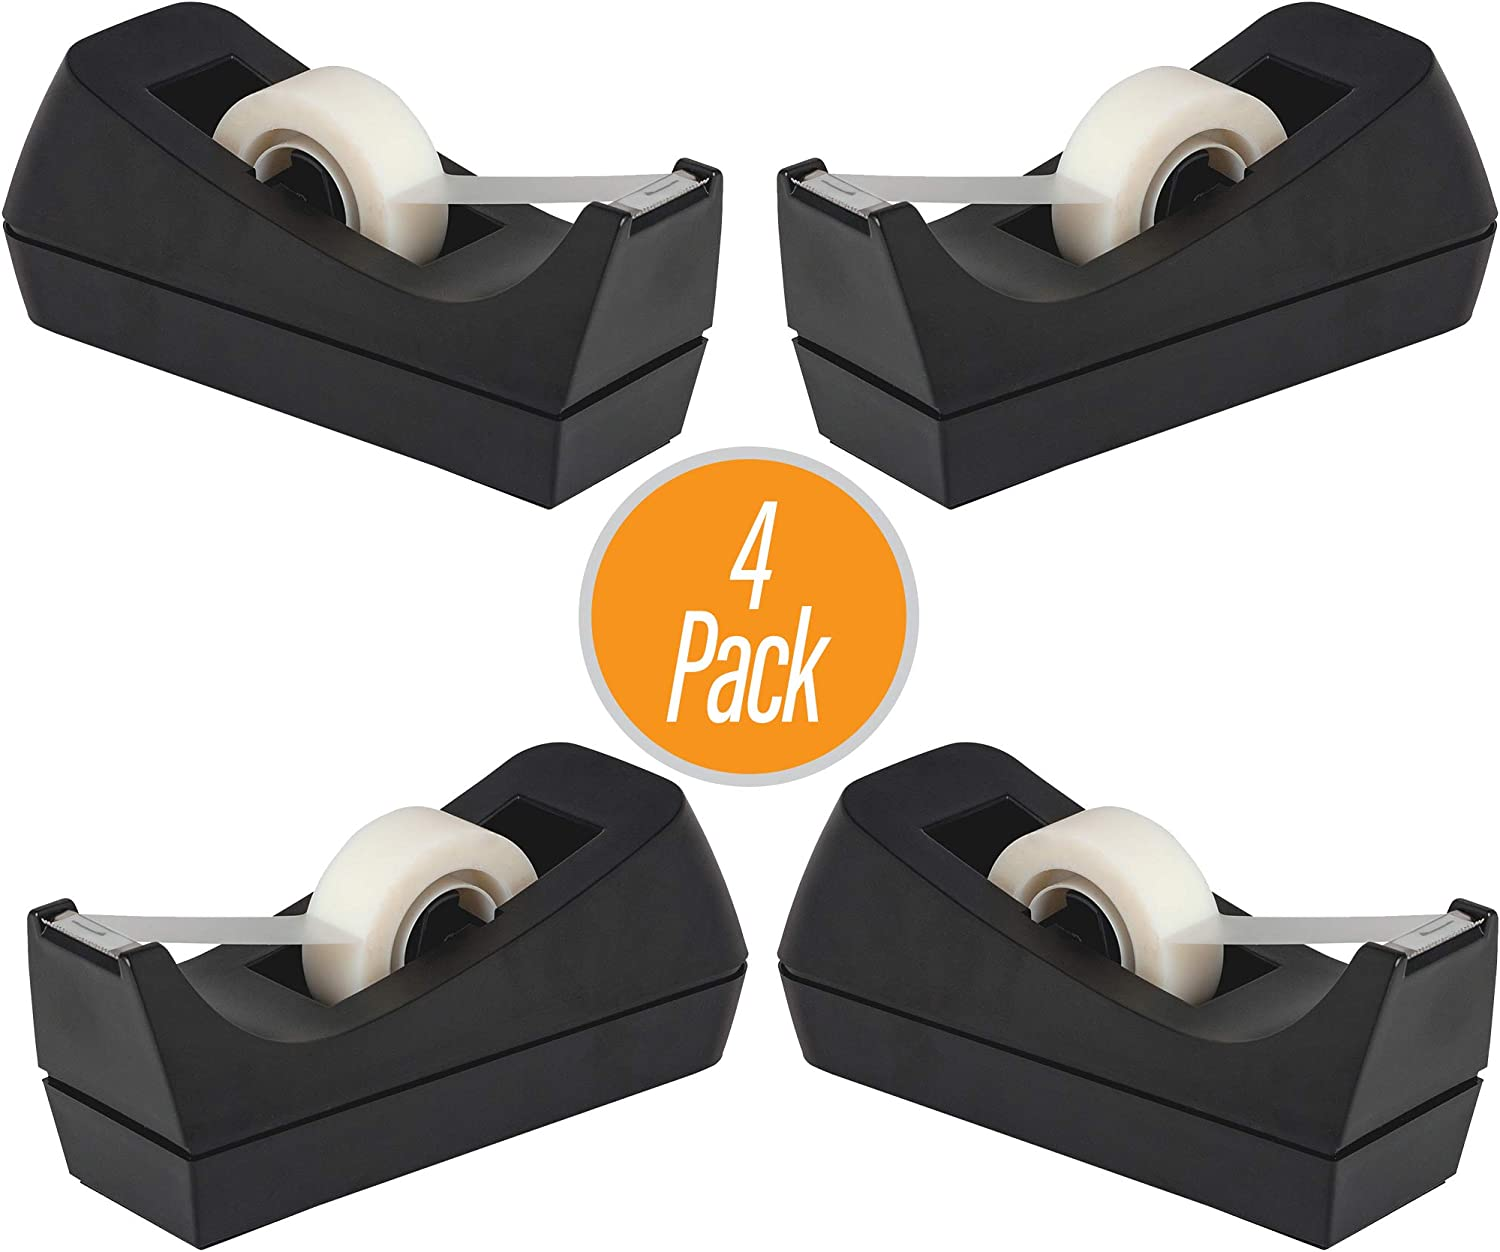 Desktop Tape Dispenser - Non-Skid Base - Weighted Tape Roll Dispenser - Perfect for Office Home School (Tape not Included) - (4-Pack)